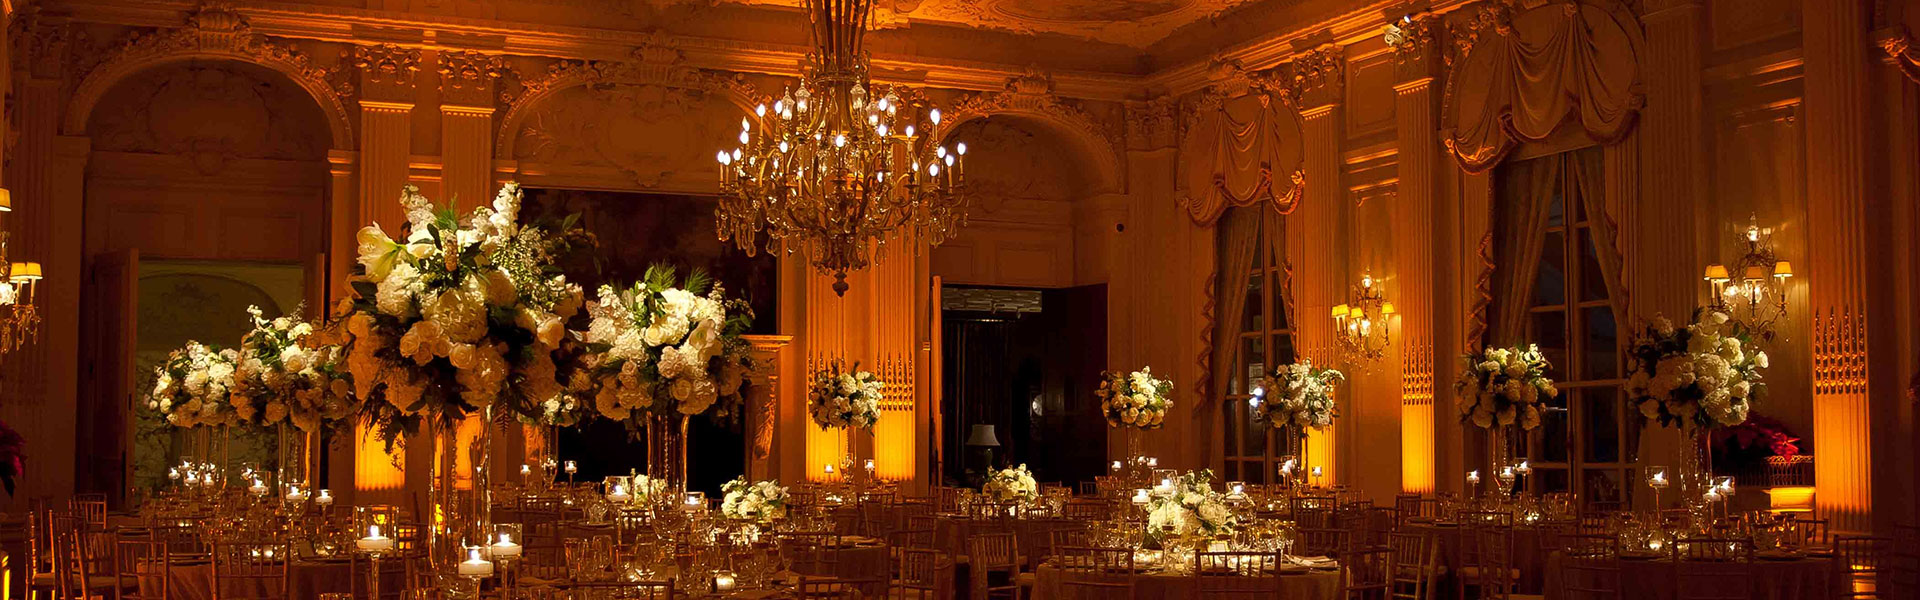 Weddings at the newport mansions the preservation society of newport county